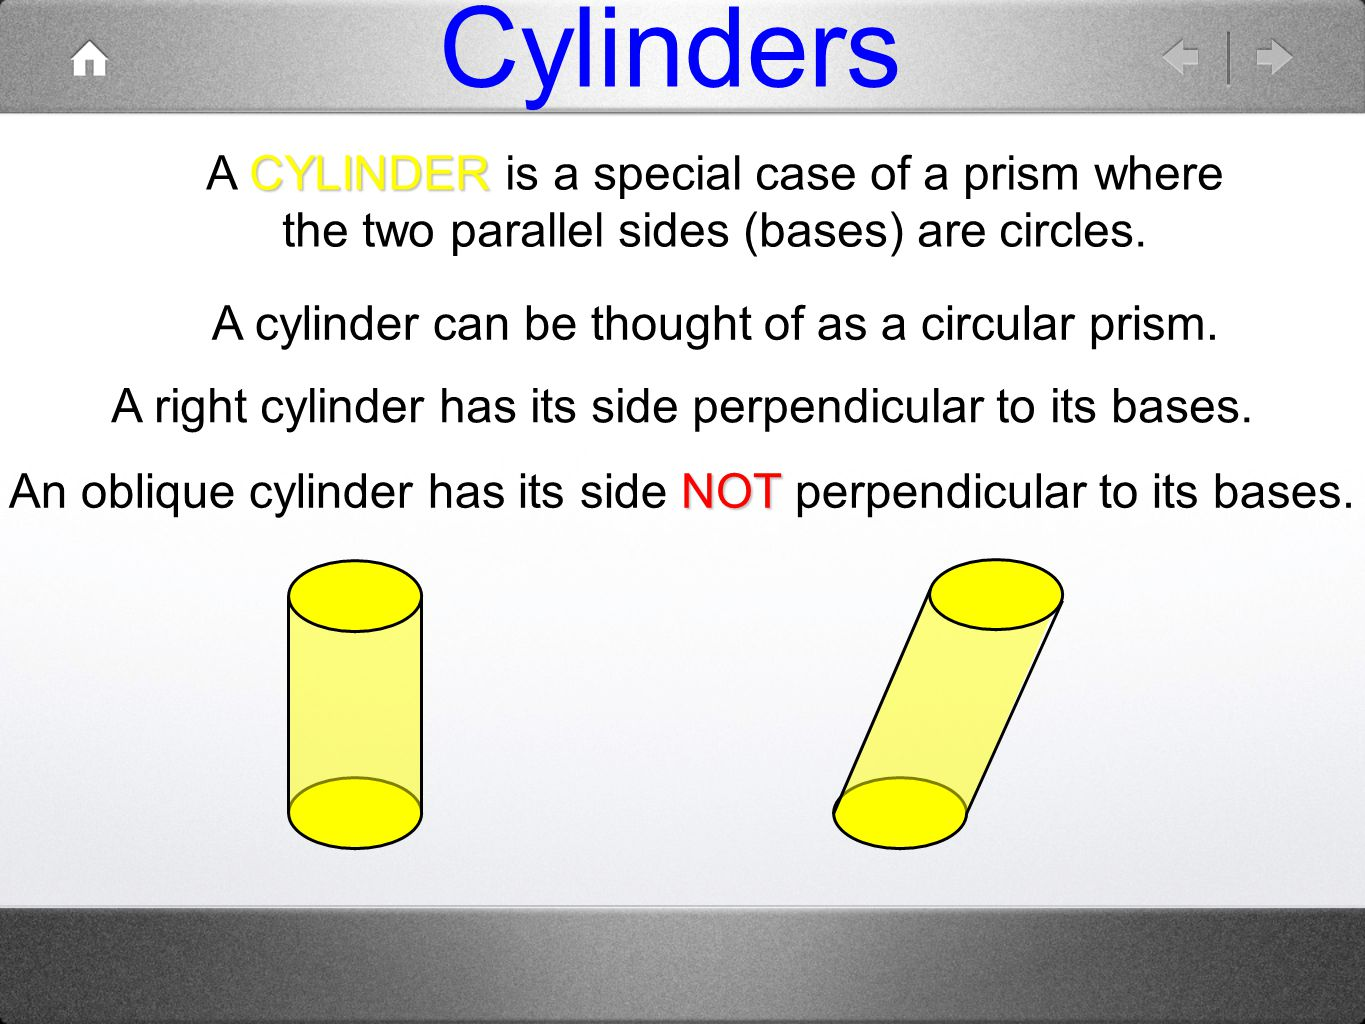 Cylinders CYLINDER A CYLINDER is a special case of a prism where the two parallel sides (bases) are circles. A right cylinder has its side perpendicul